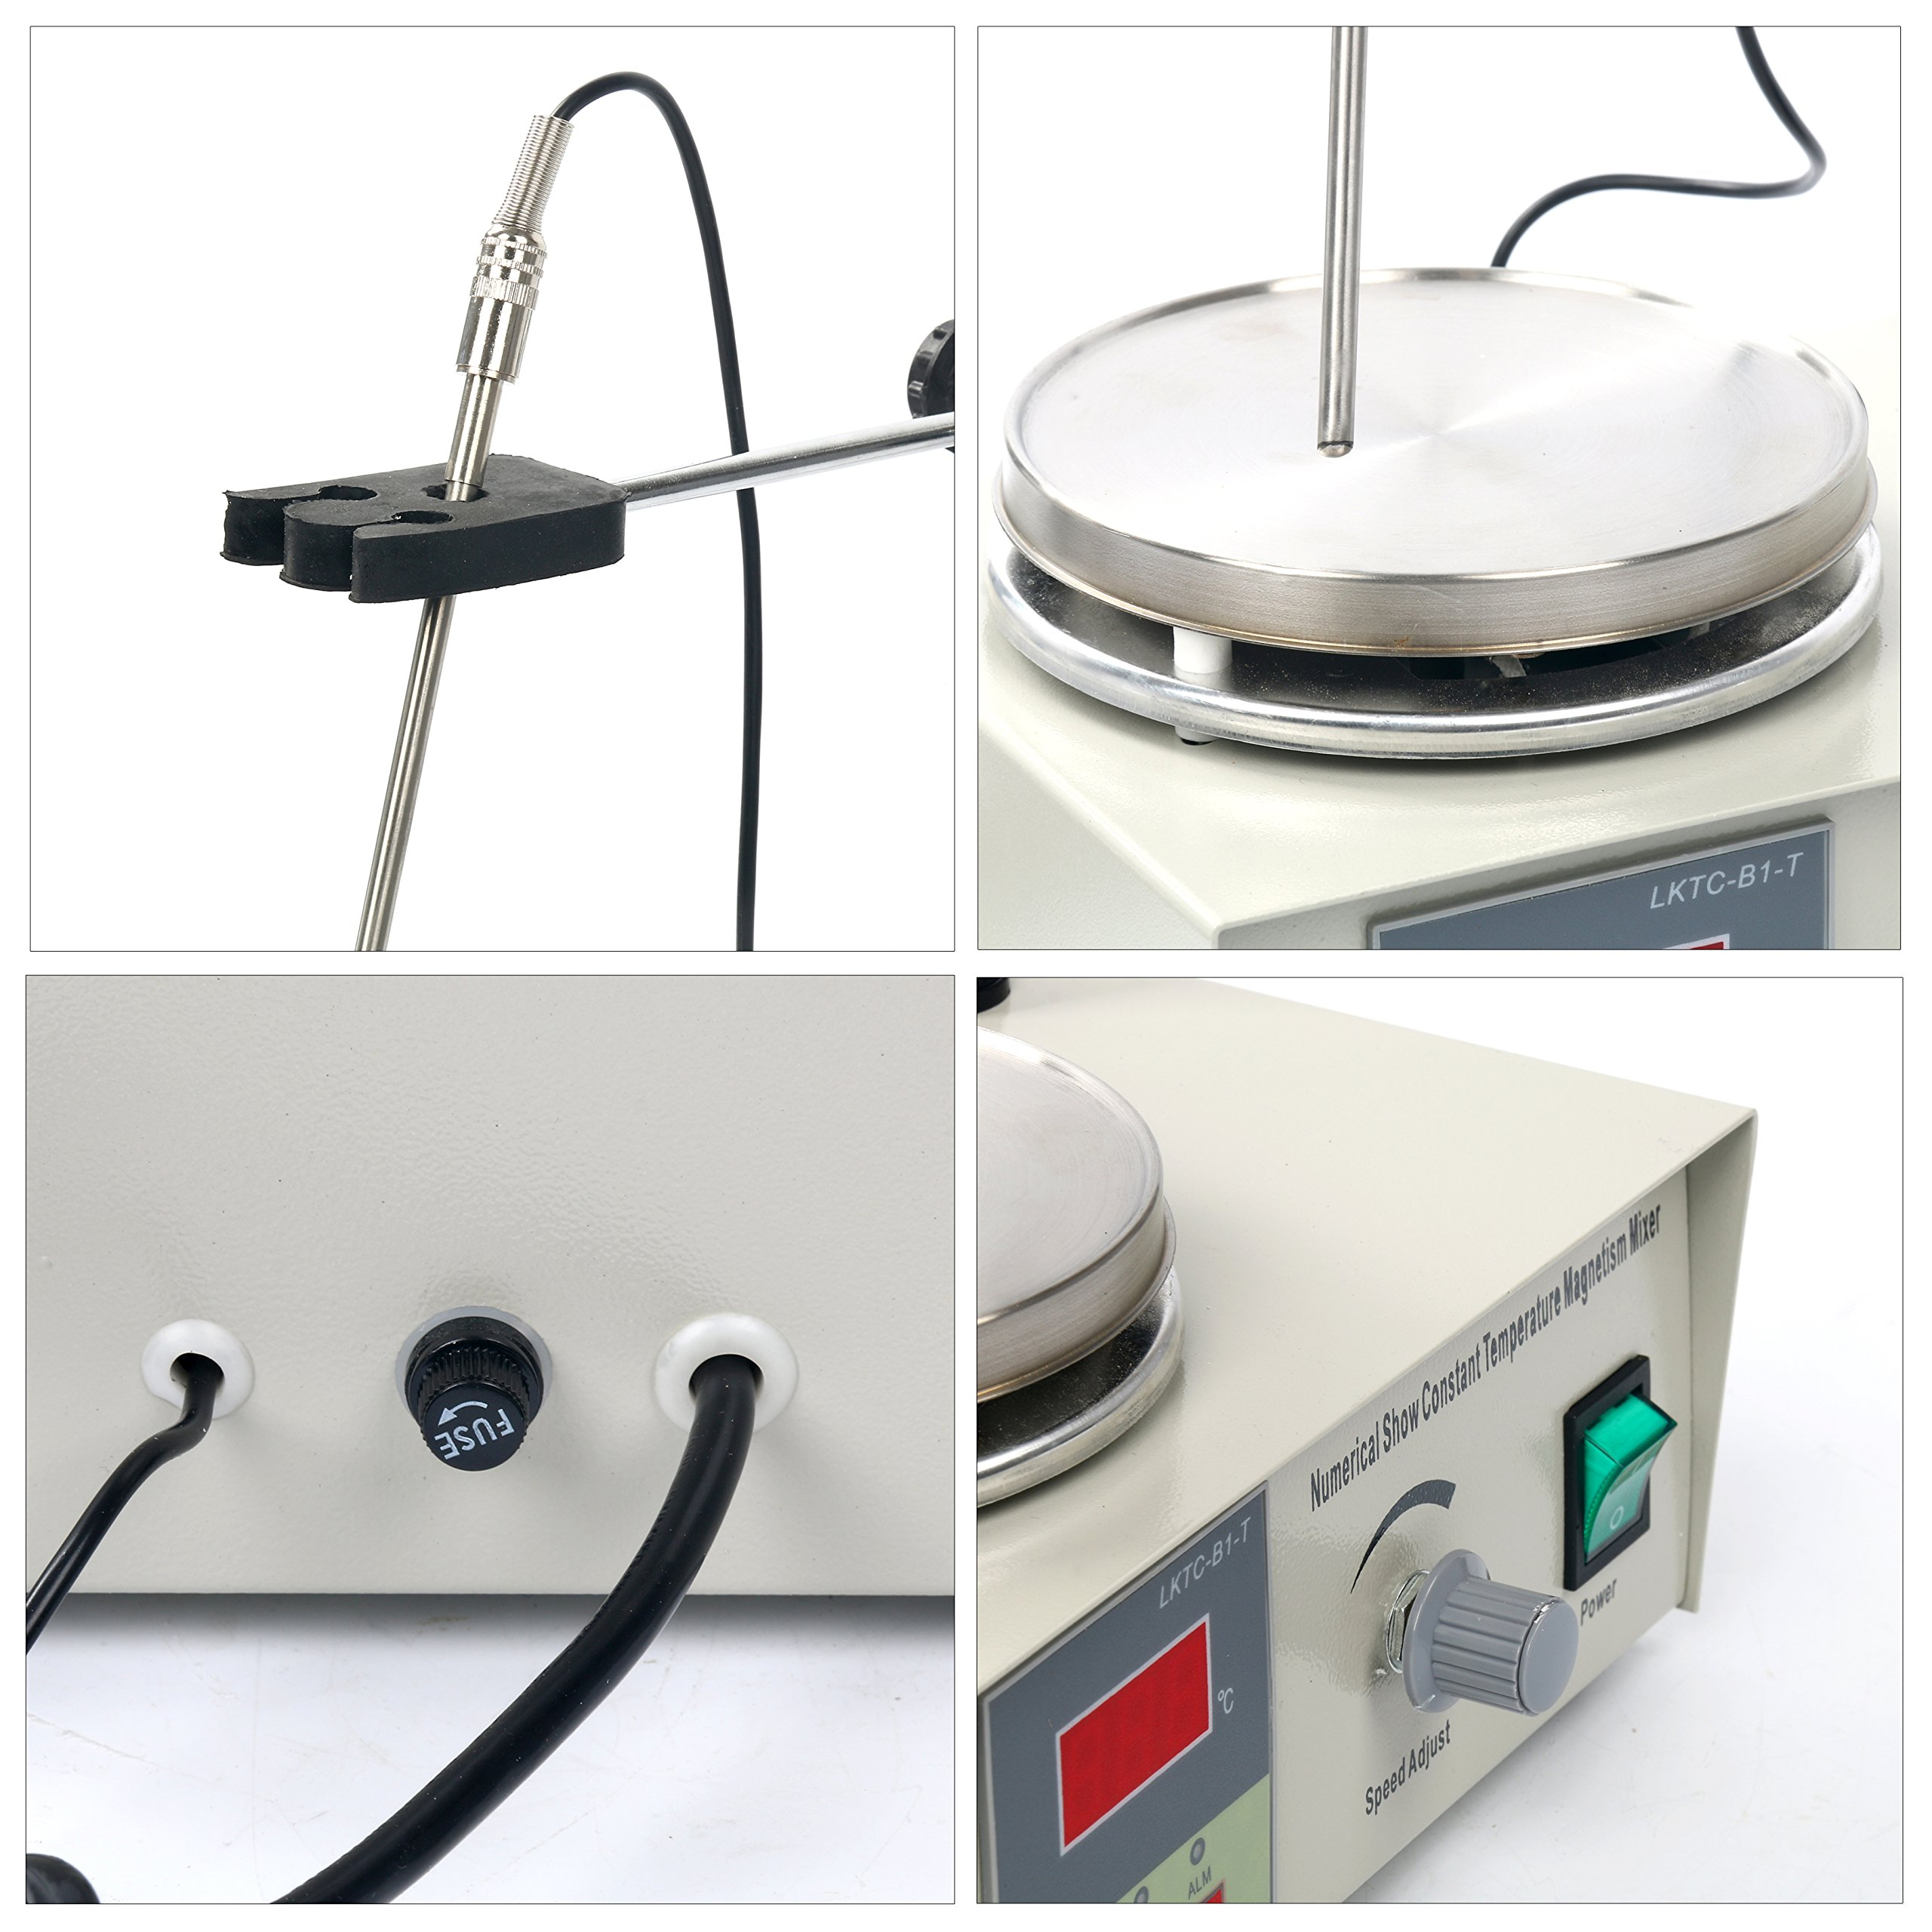 YaeCCC Magnetic Stirrer Hotplate with heating plate 85-2 Digital Magnetic mixer AC 110V by YaeCCC (Image #2)